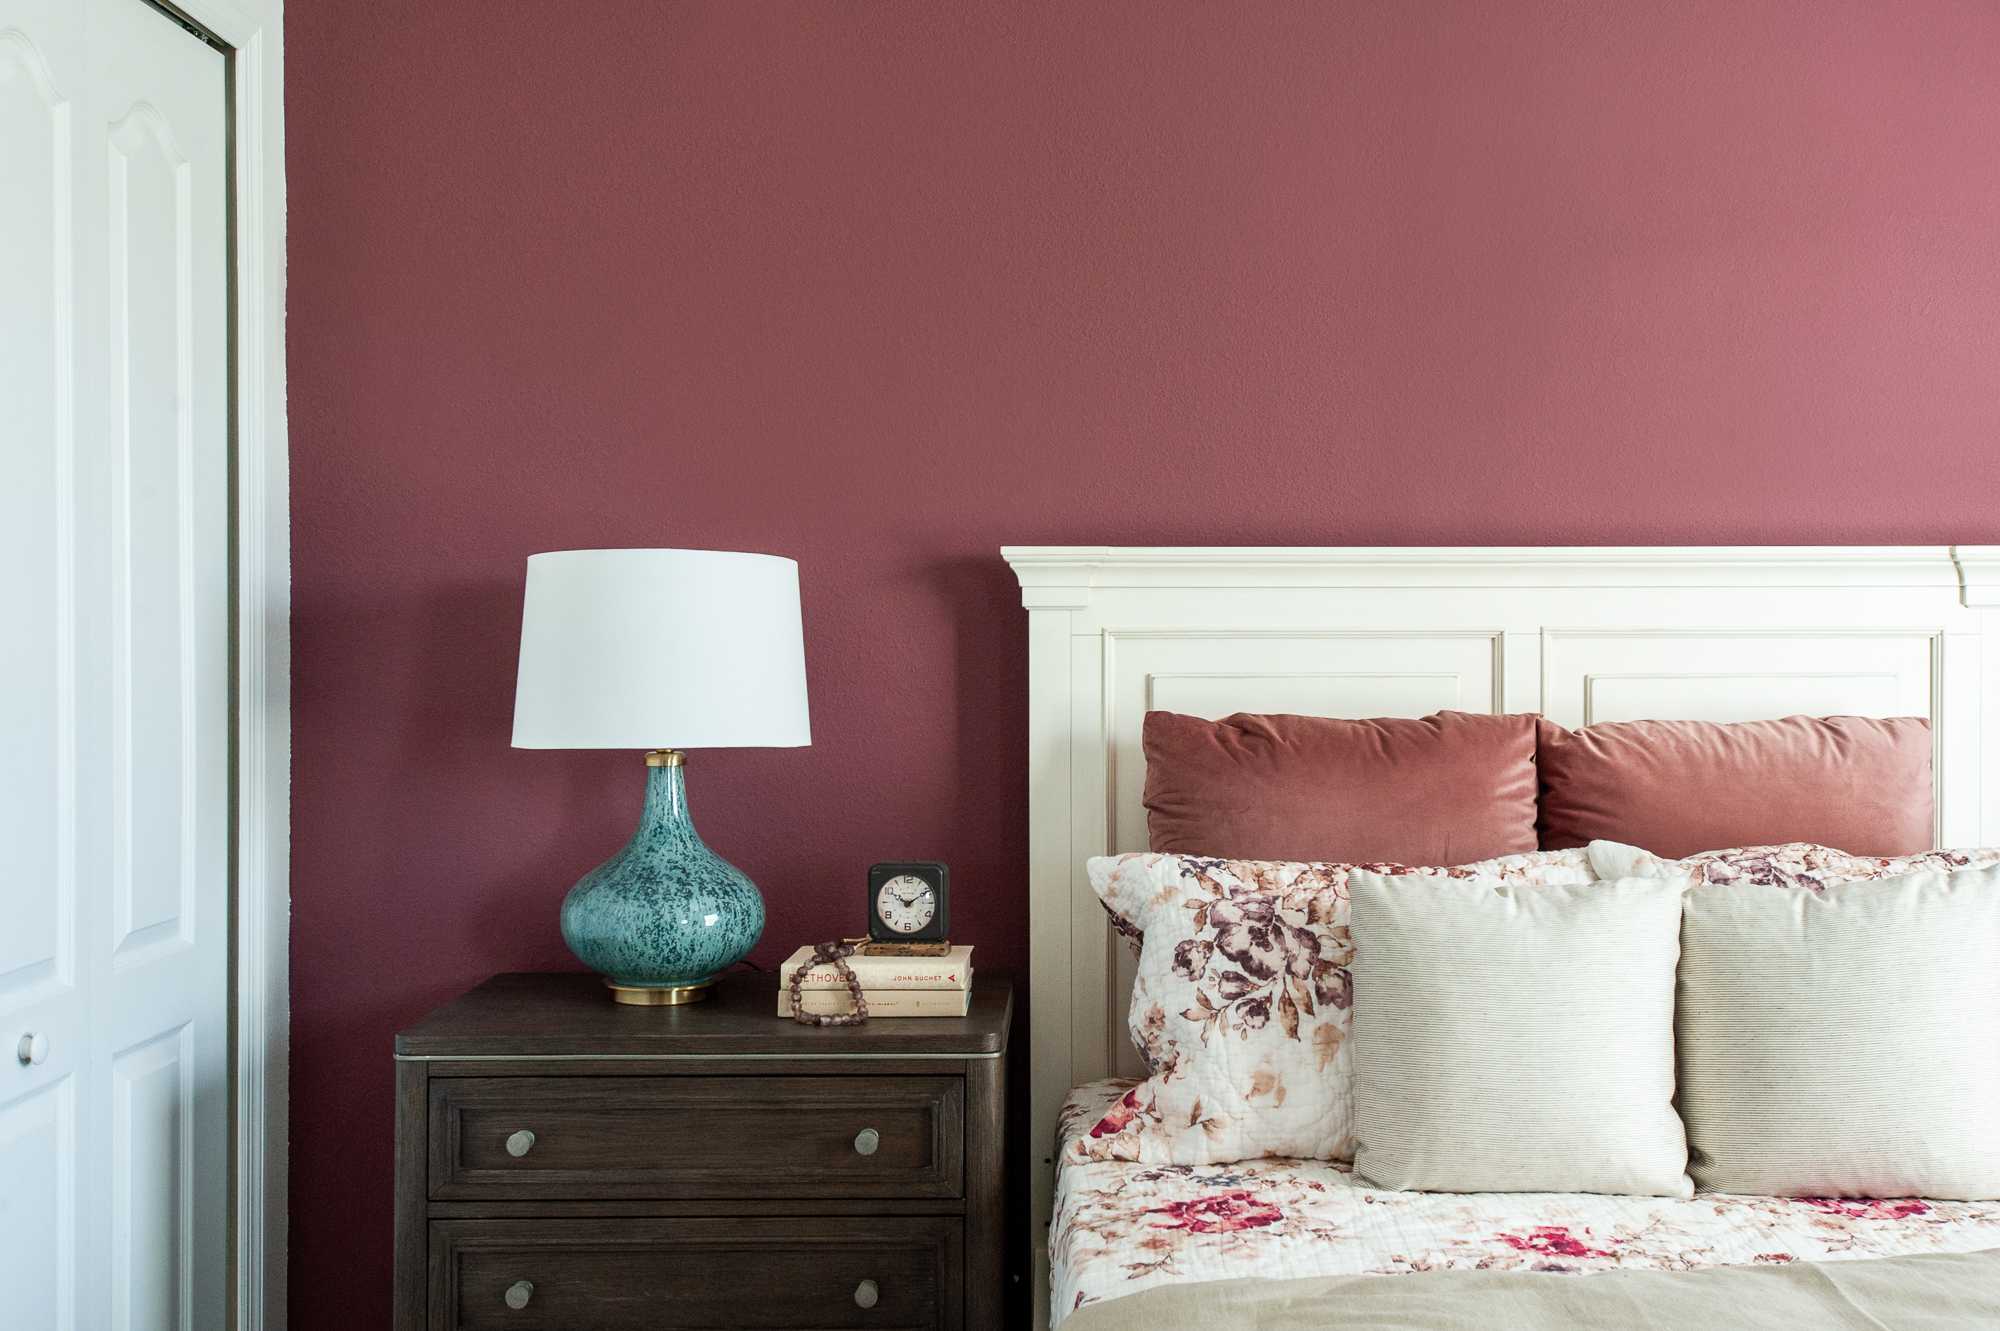 Micamy_Interior Designer_Design_Interior_Model_Merchandising_Guest Bedroom_Accent Wall_Uttemrost_UniversalFurniture_Schumacher_AmityBedding_Lennar_Blog_Styling.jpg